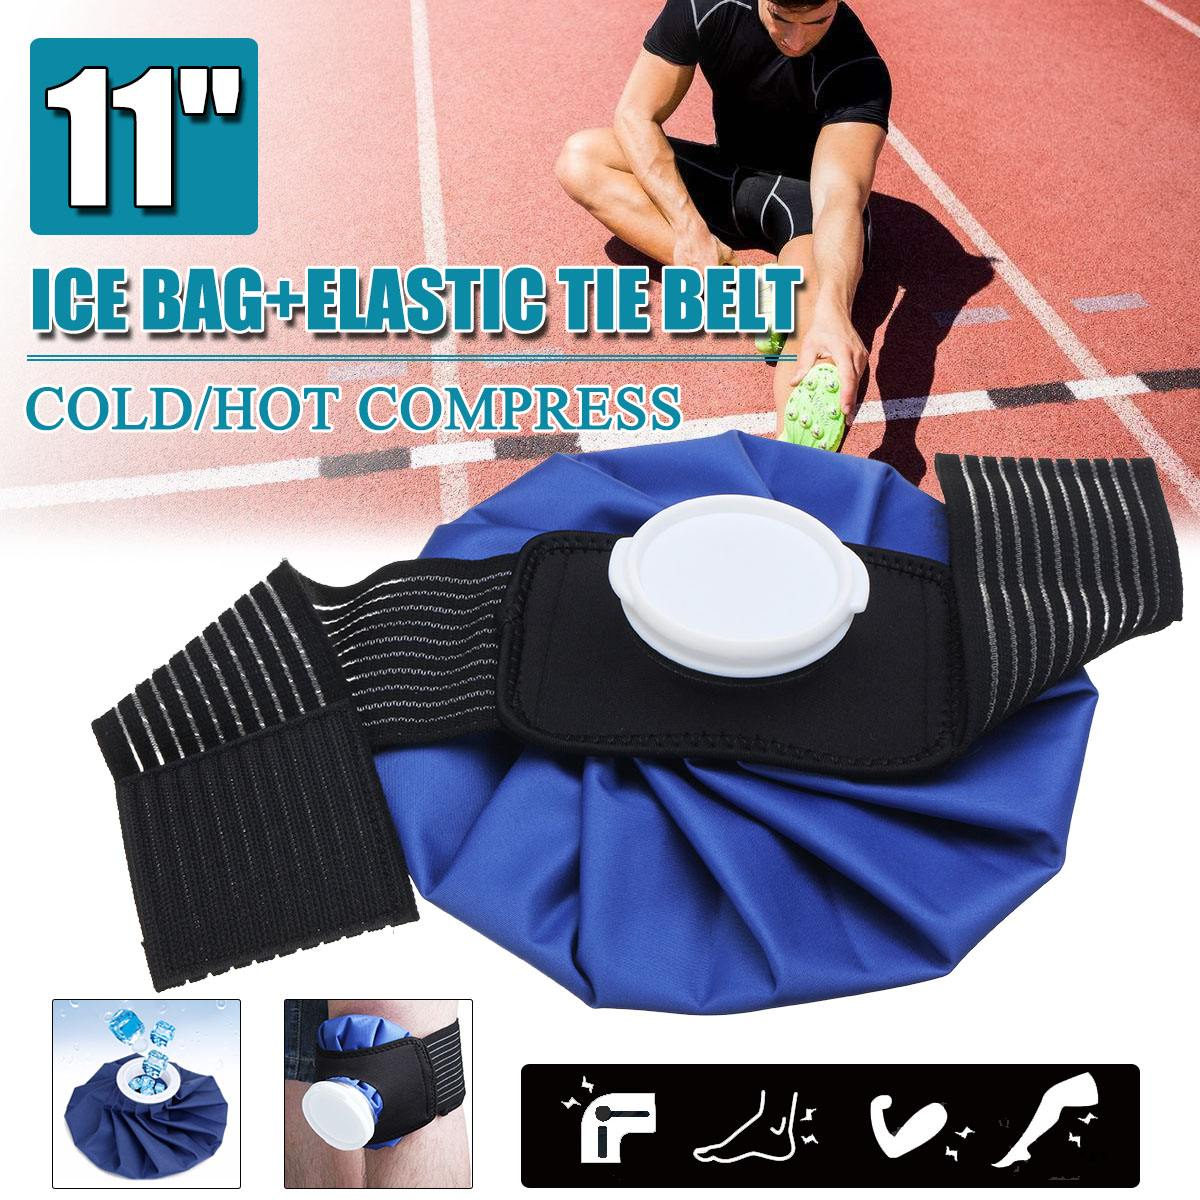 11'' Ice Bag Pack Protector Elastic Tie Belt Set Reusable Knee Head Leg Injury Pain Relief Ice Bag Outdoor Sport First Aid